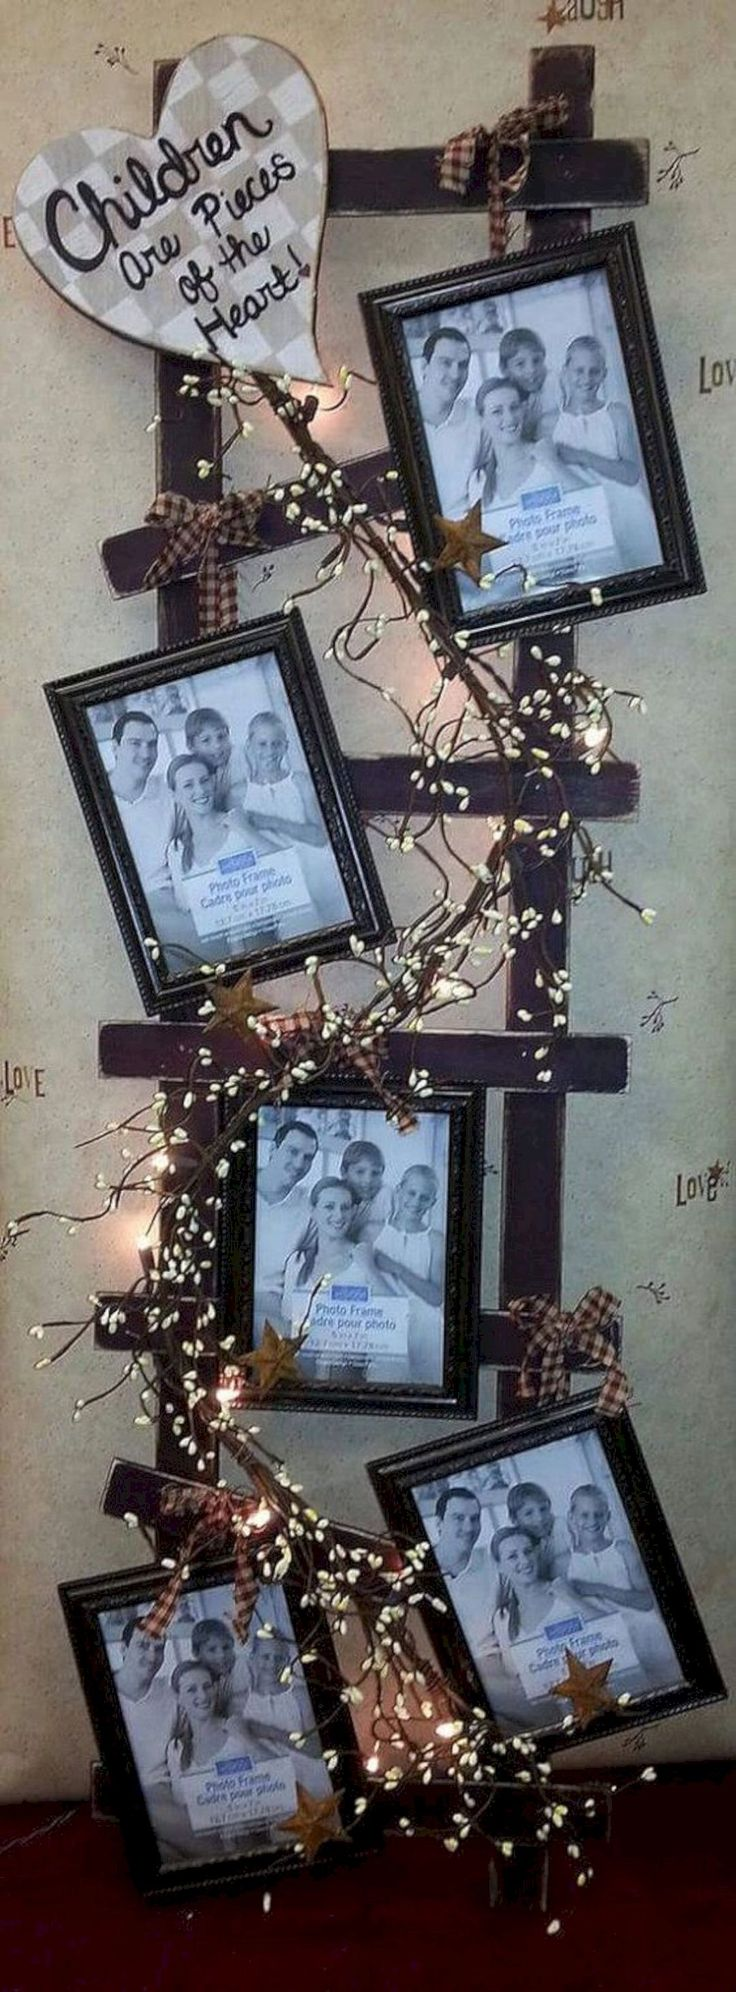 17 Cool DIY Home Decor Picture Frames https://www.futuristarchitecture.com/28698-diy-home-decor-picture-frames.html